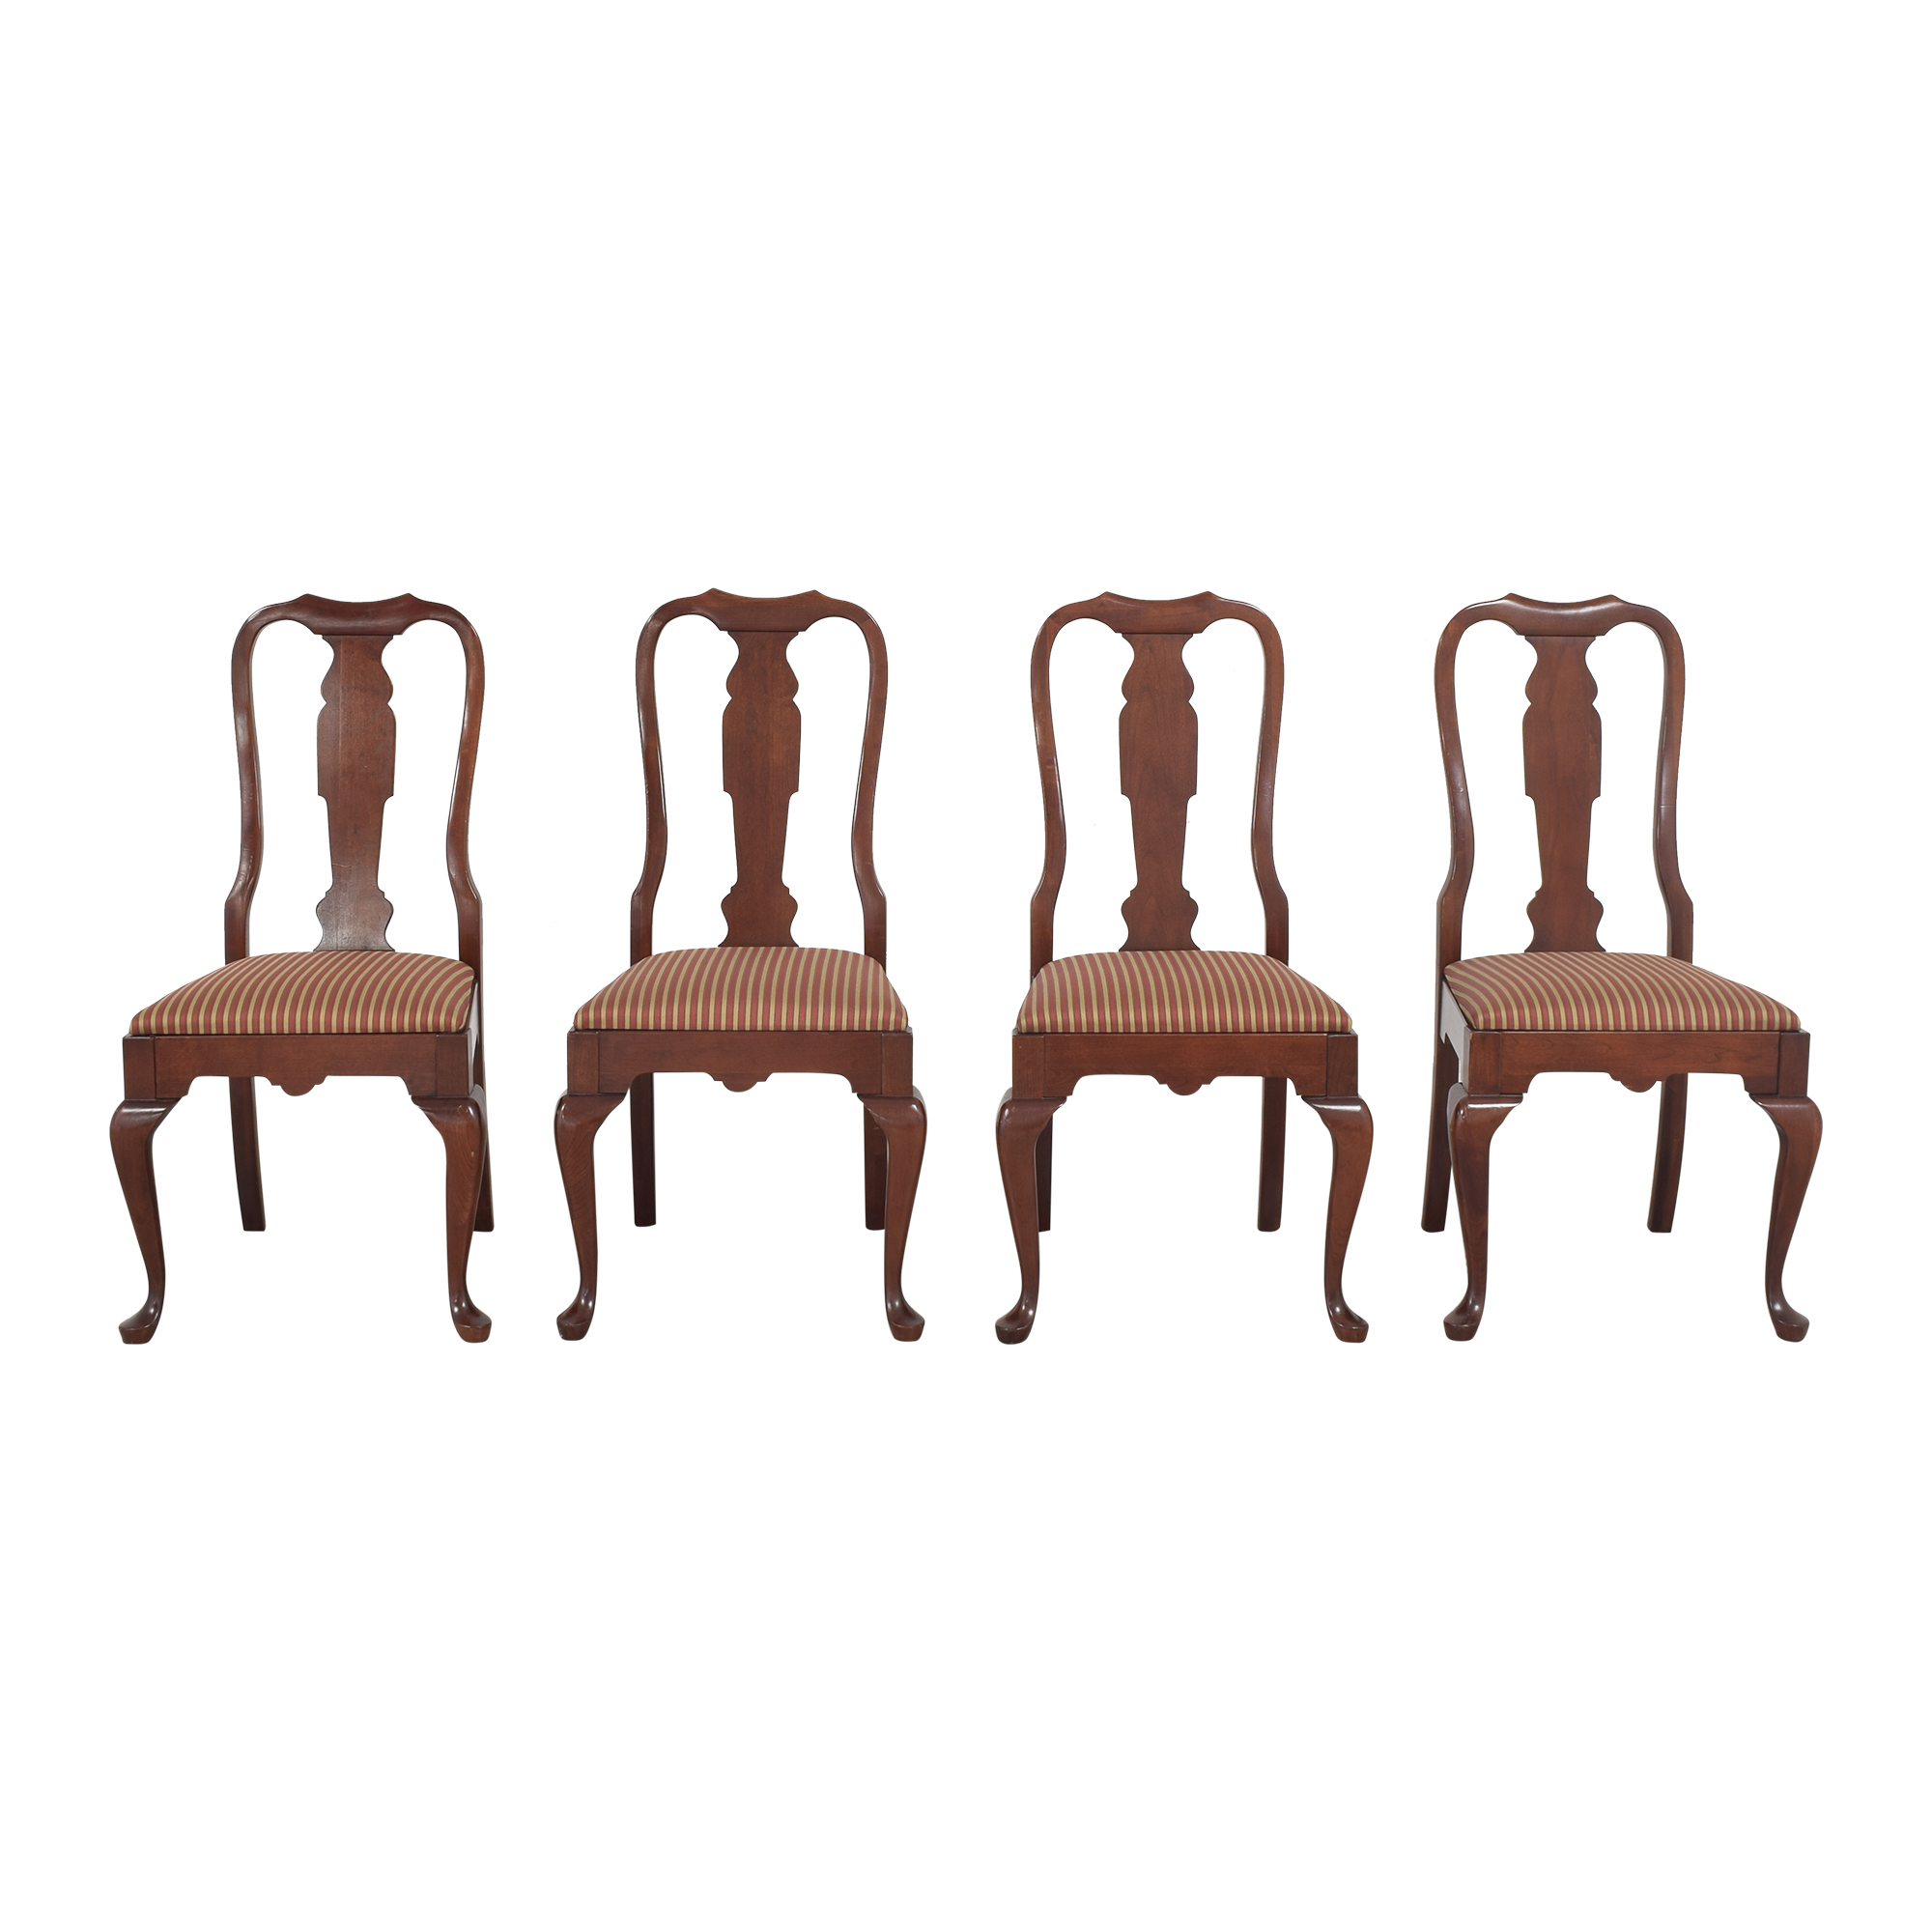 Pennsylvania House Pennsylvania House Upholstered Dining Side Chairs pa